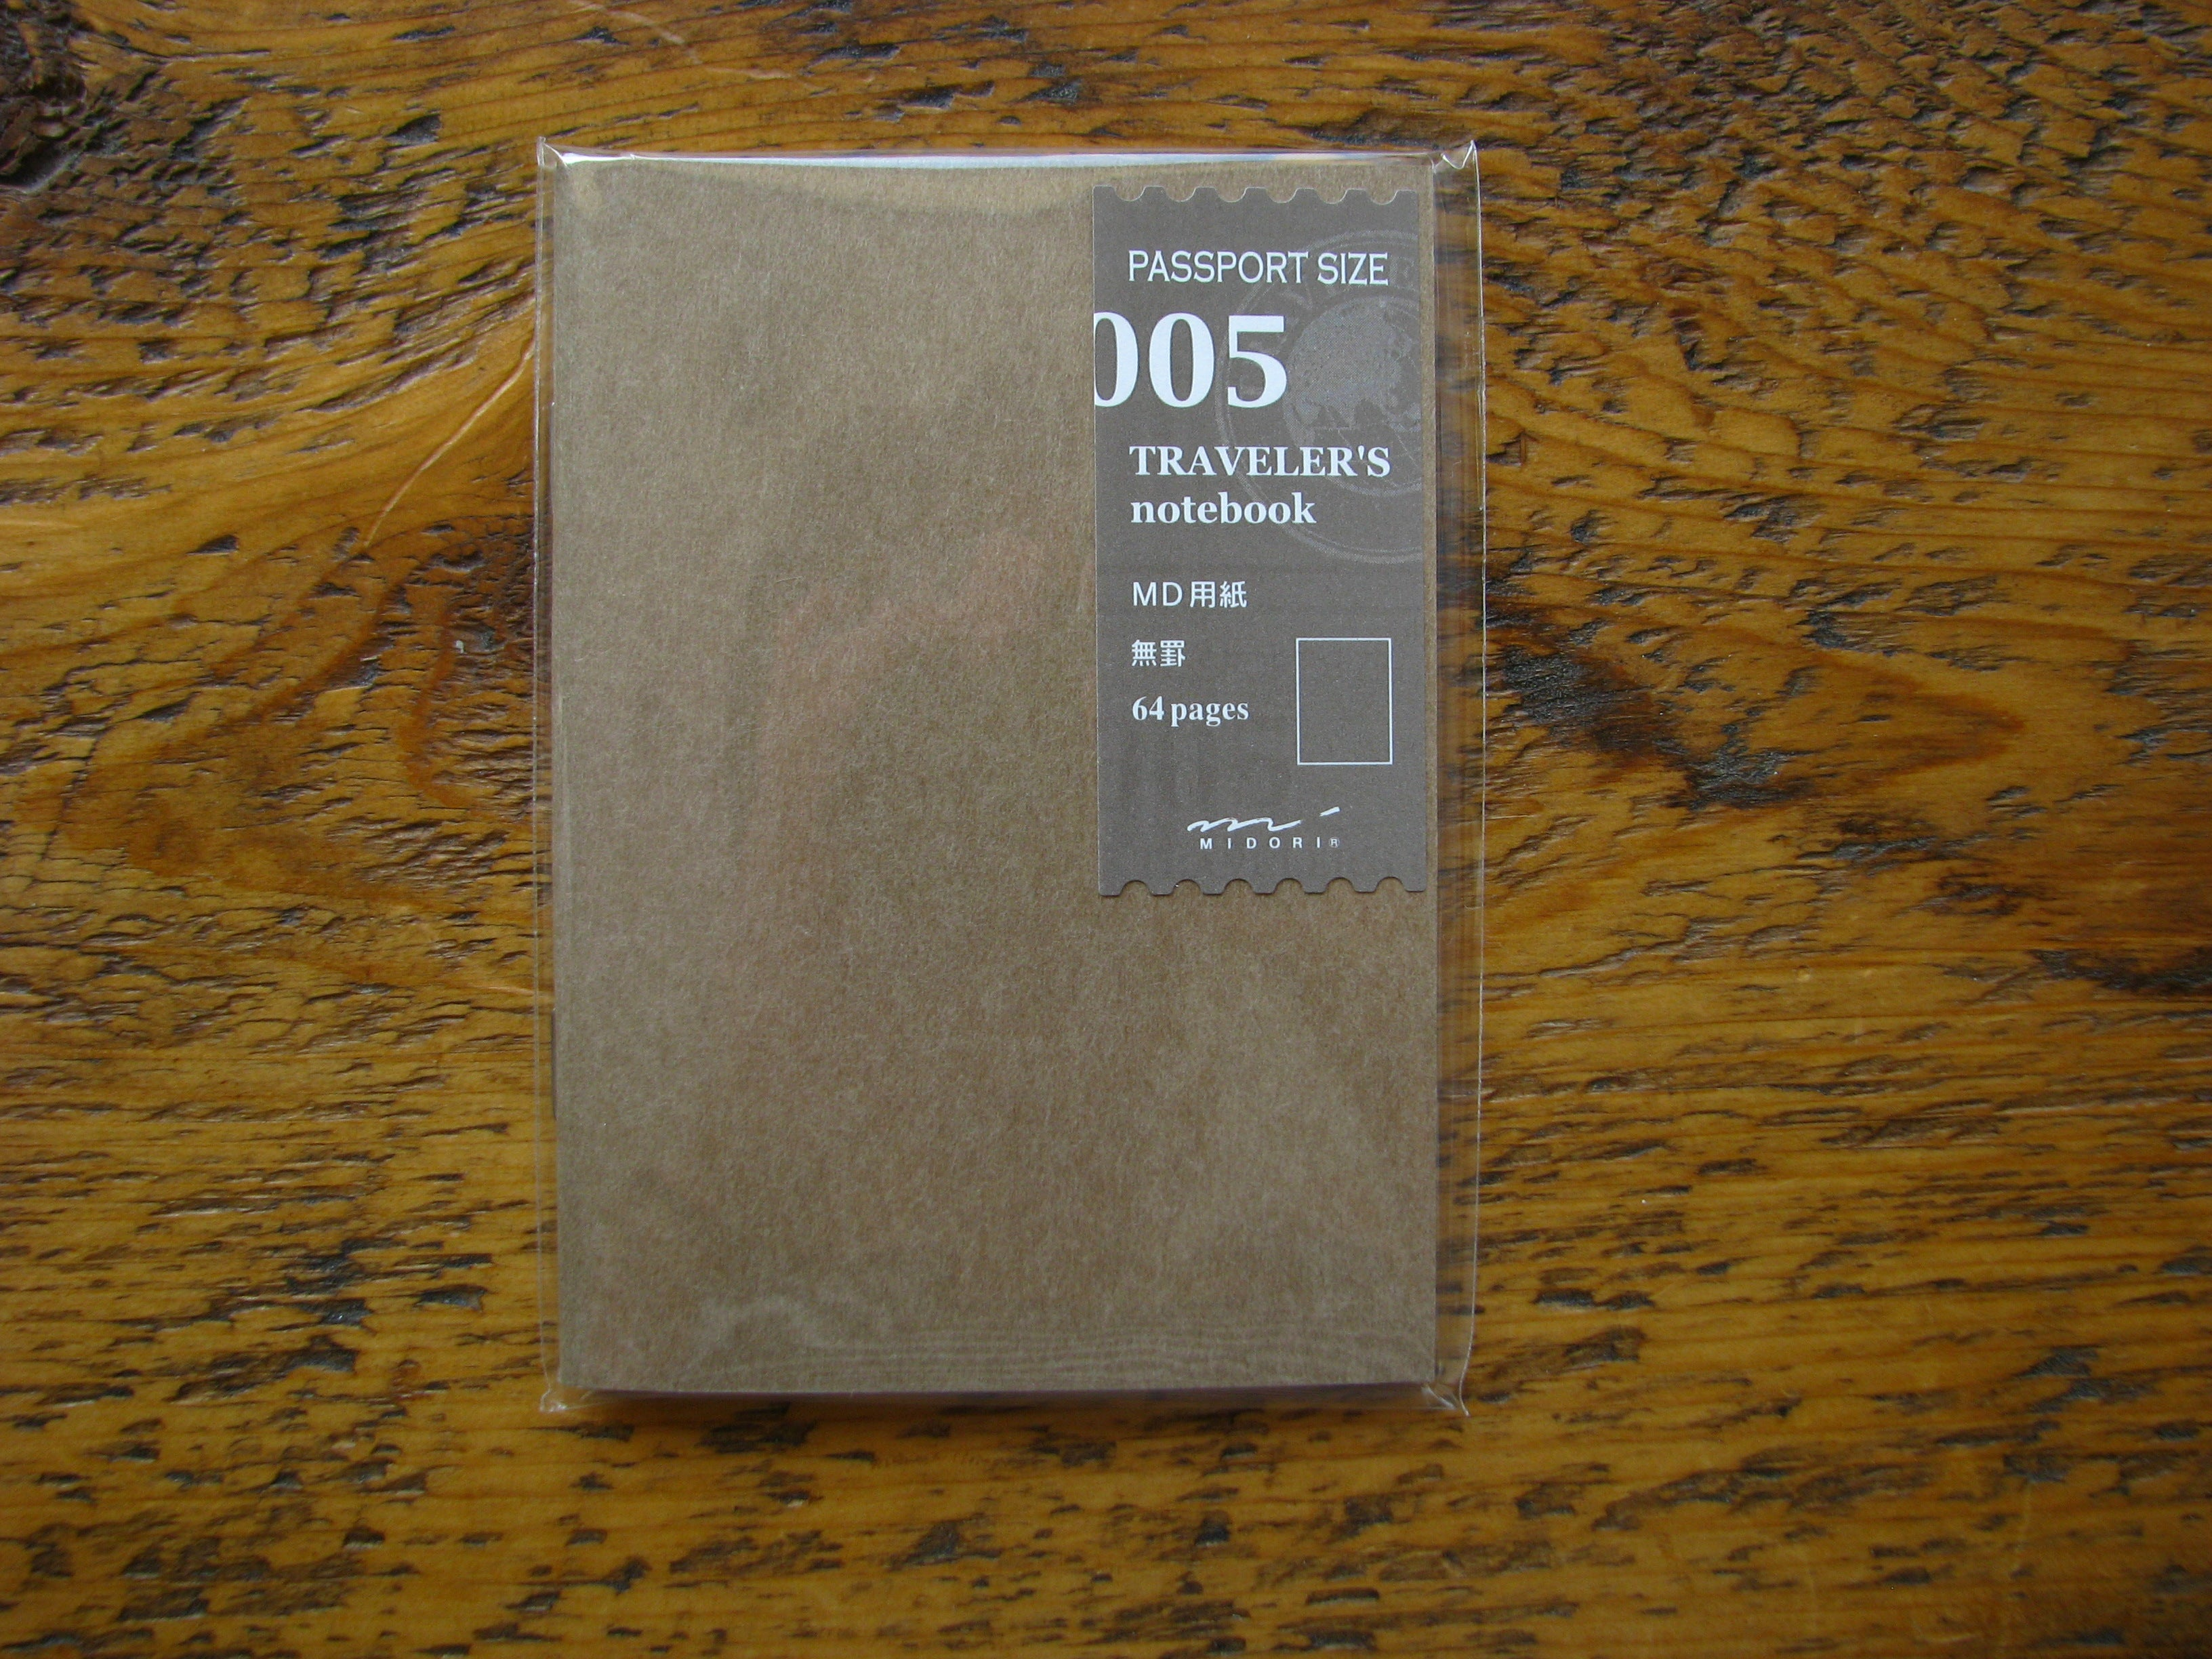 Midori MD Refill for Passport Size Traveler's Notebook 005